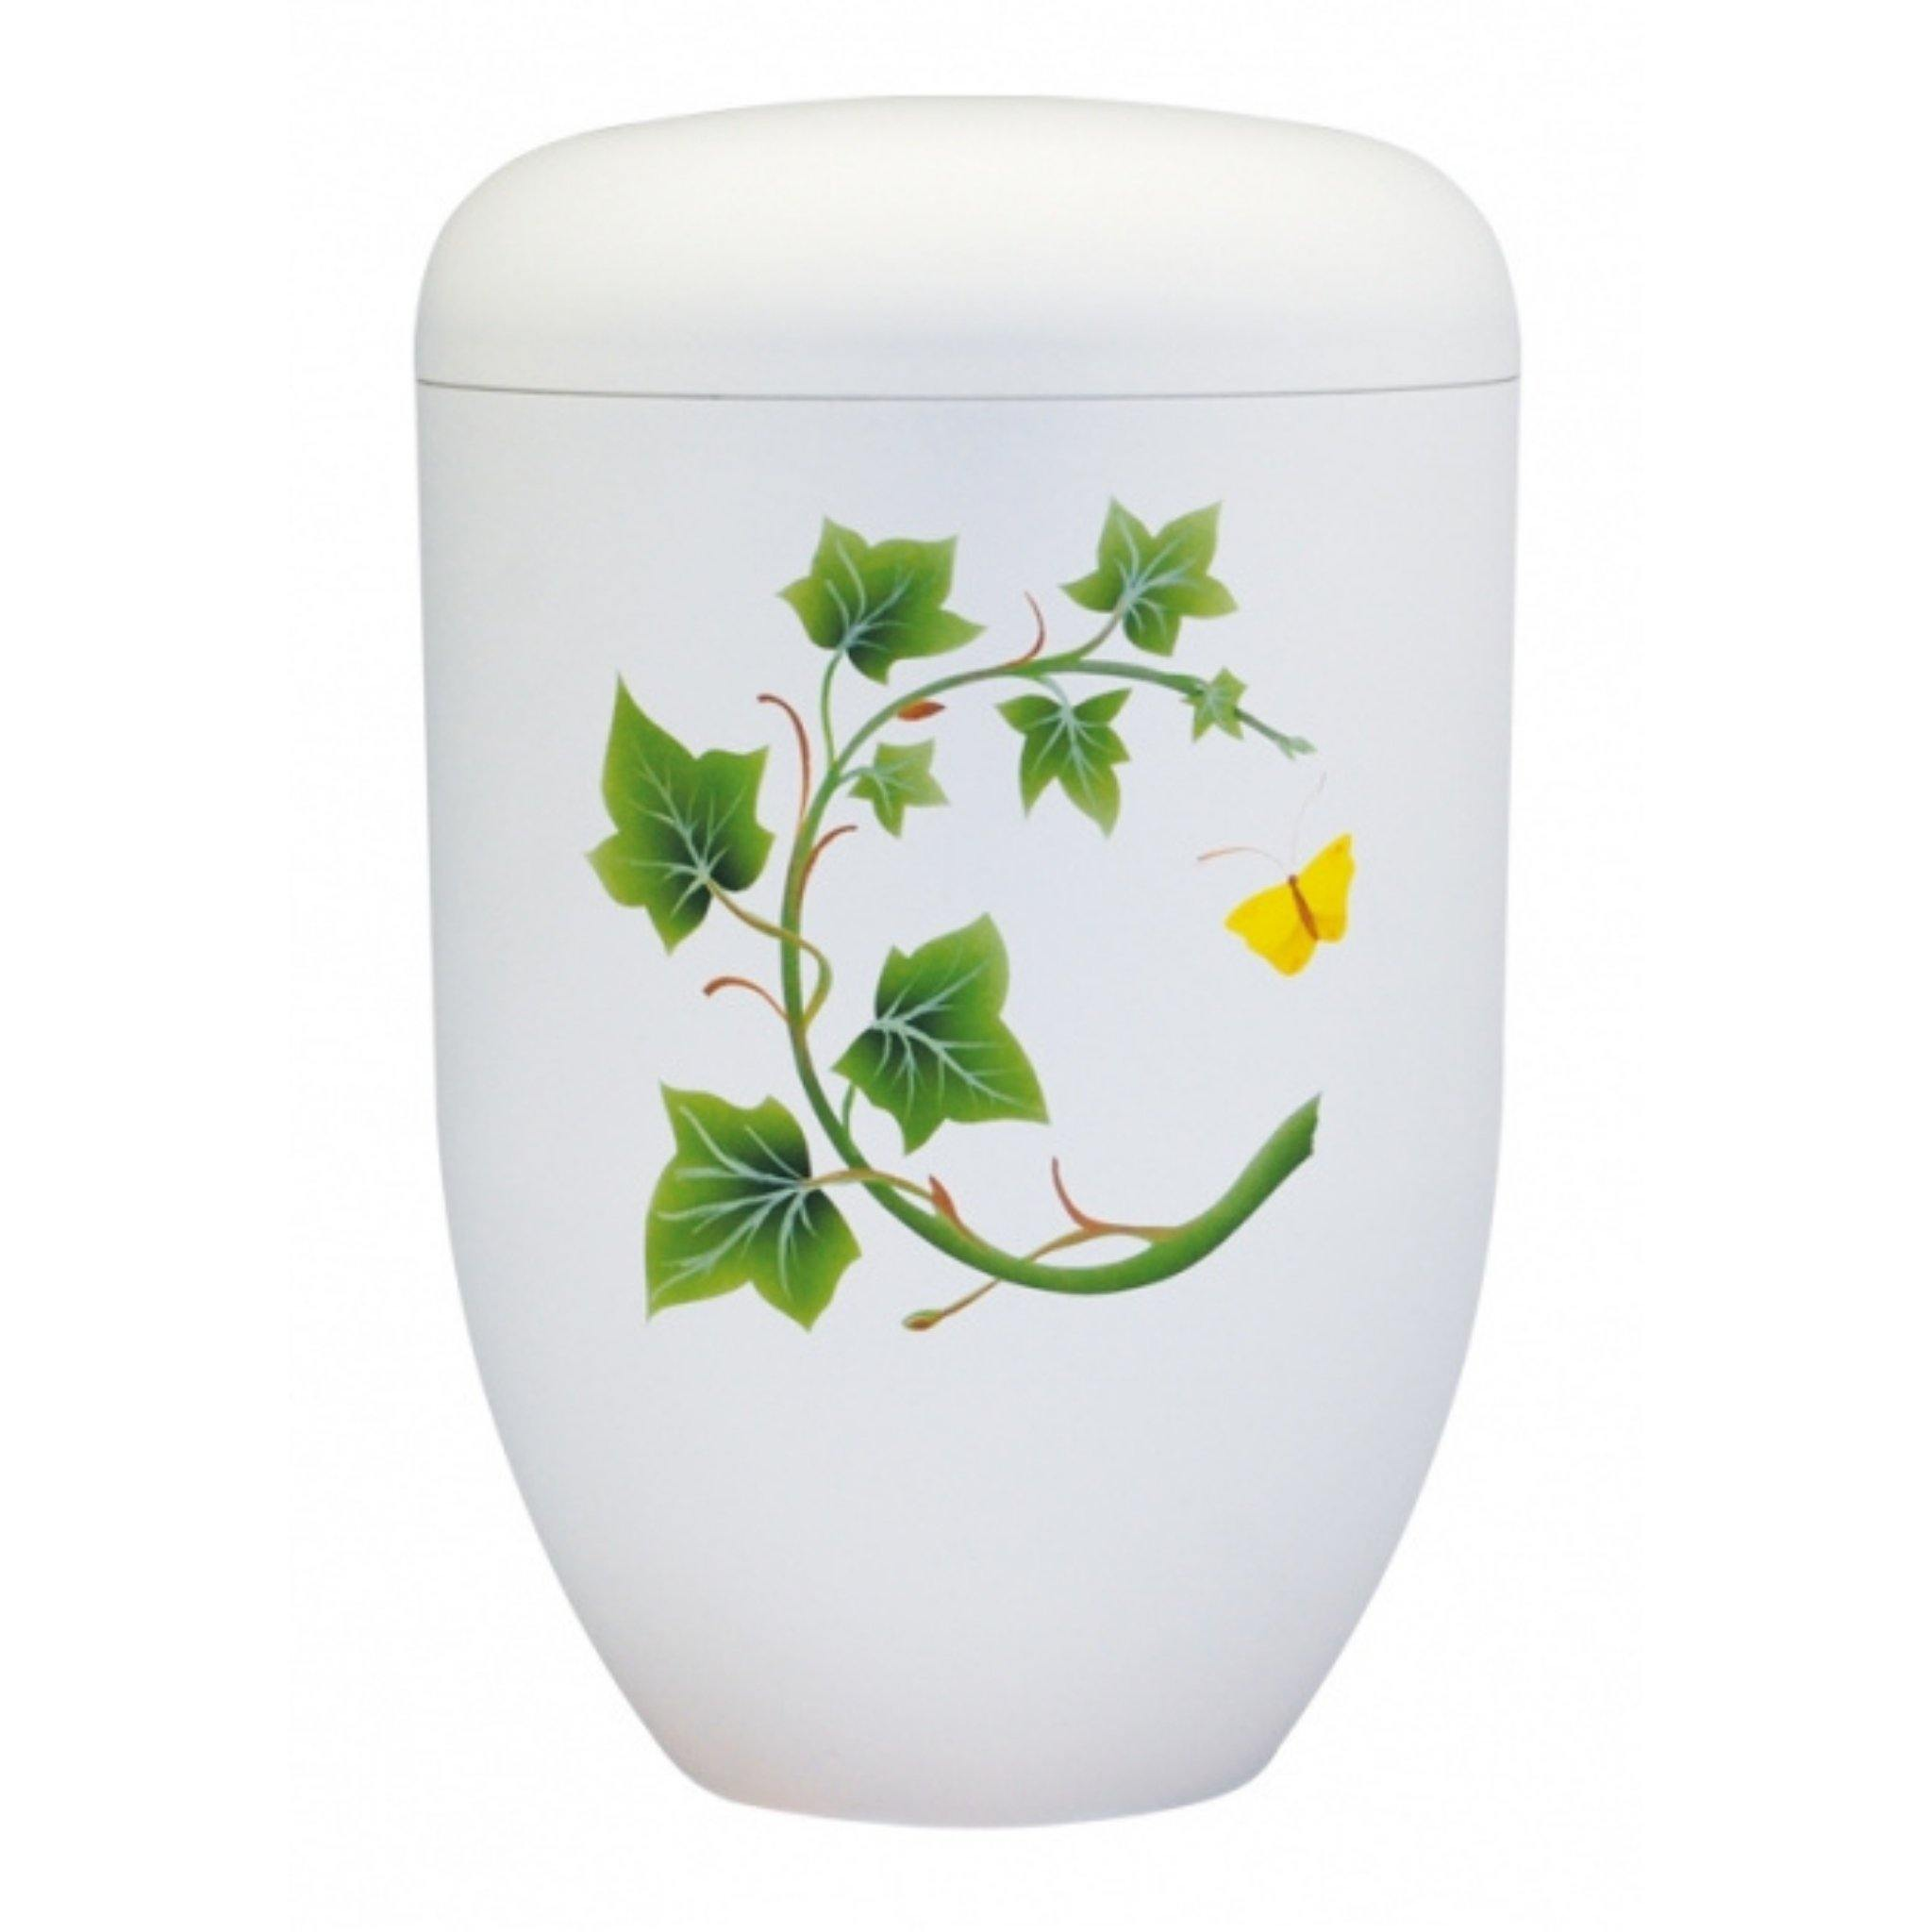 Polperro Ivy Bio Cremation Ashes Urn - Urns UK